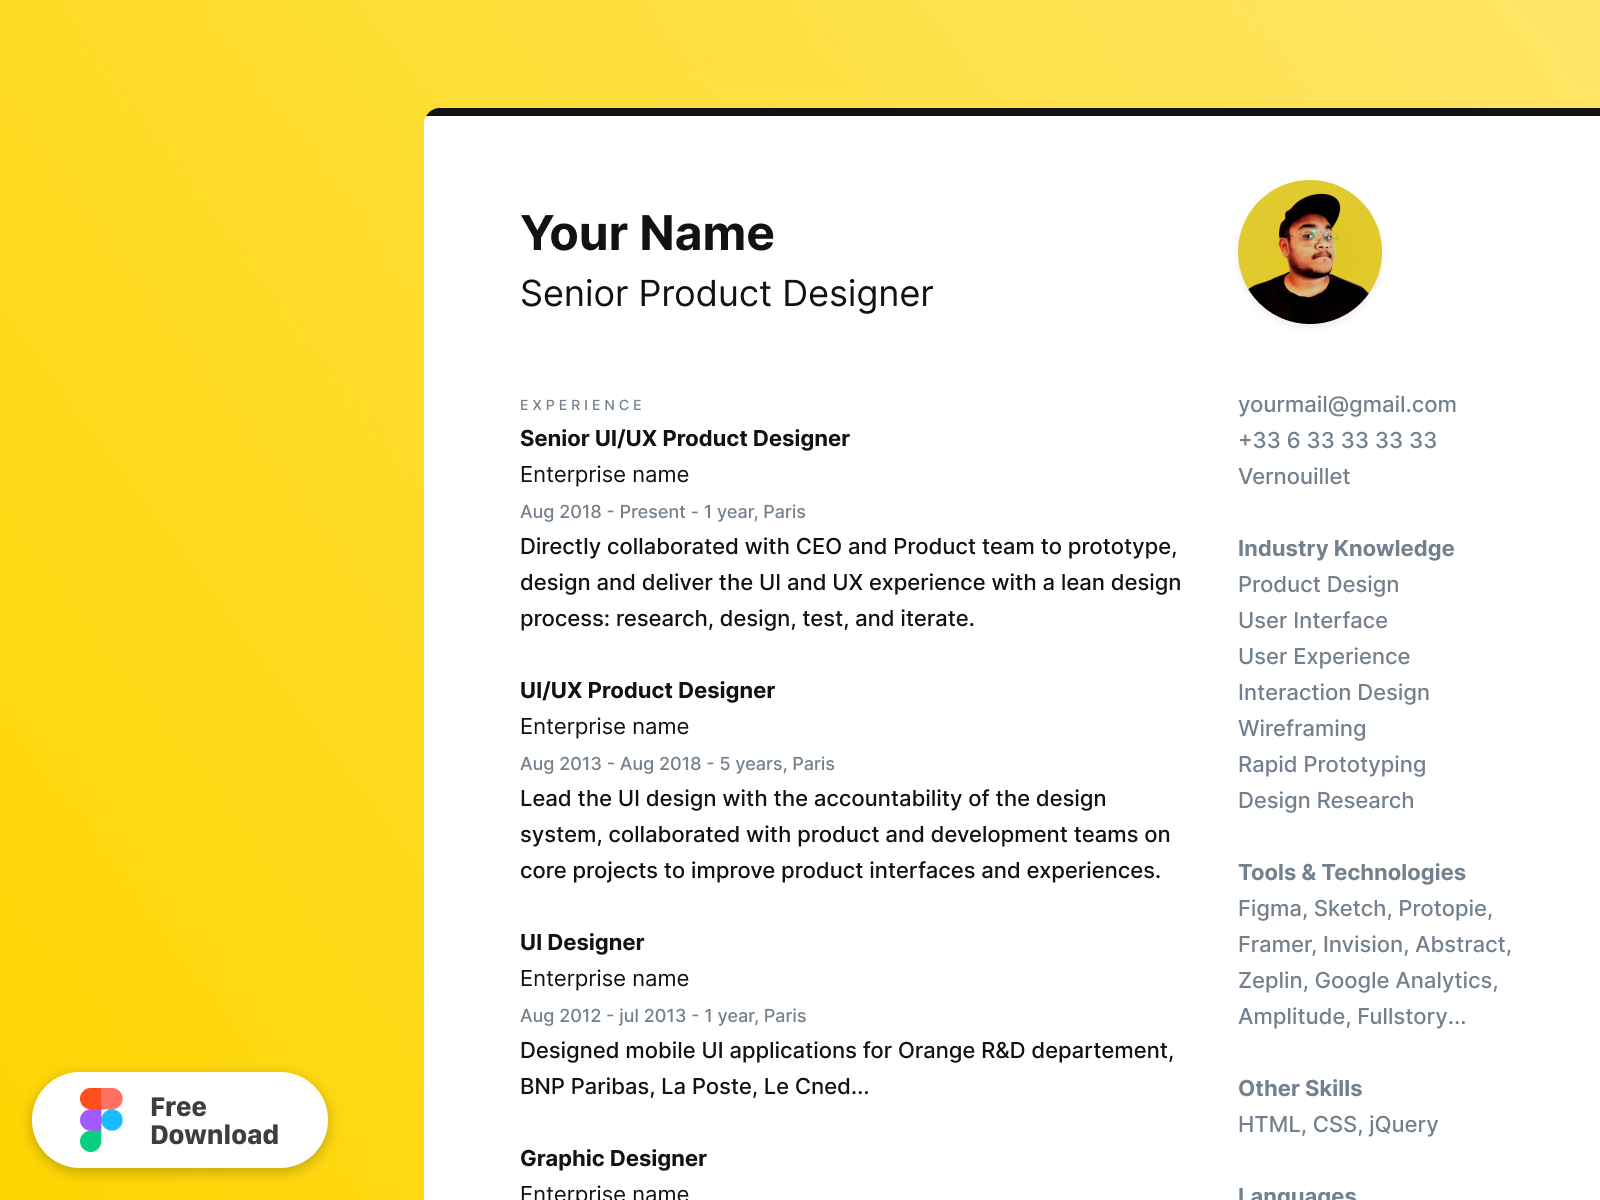 Cv Resume Figma Template By Alexis Riols On Dribbble